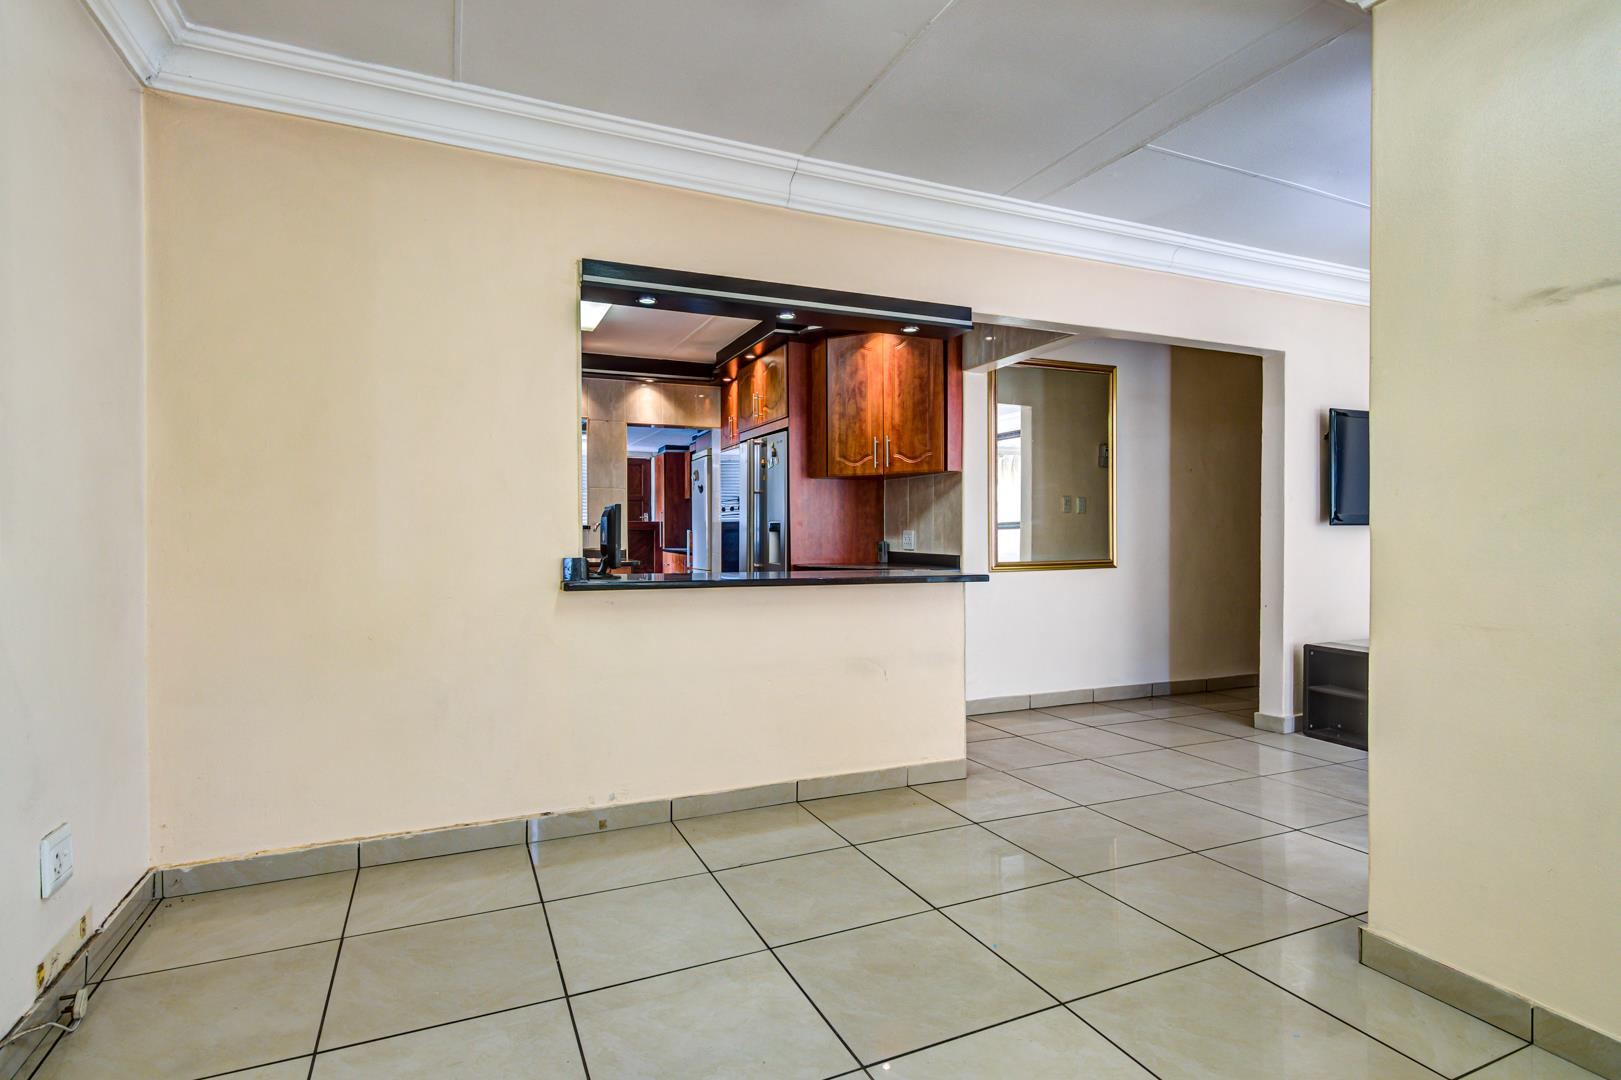 3 Bedroom House For Sale in Croydon